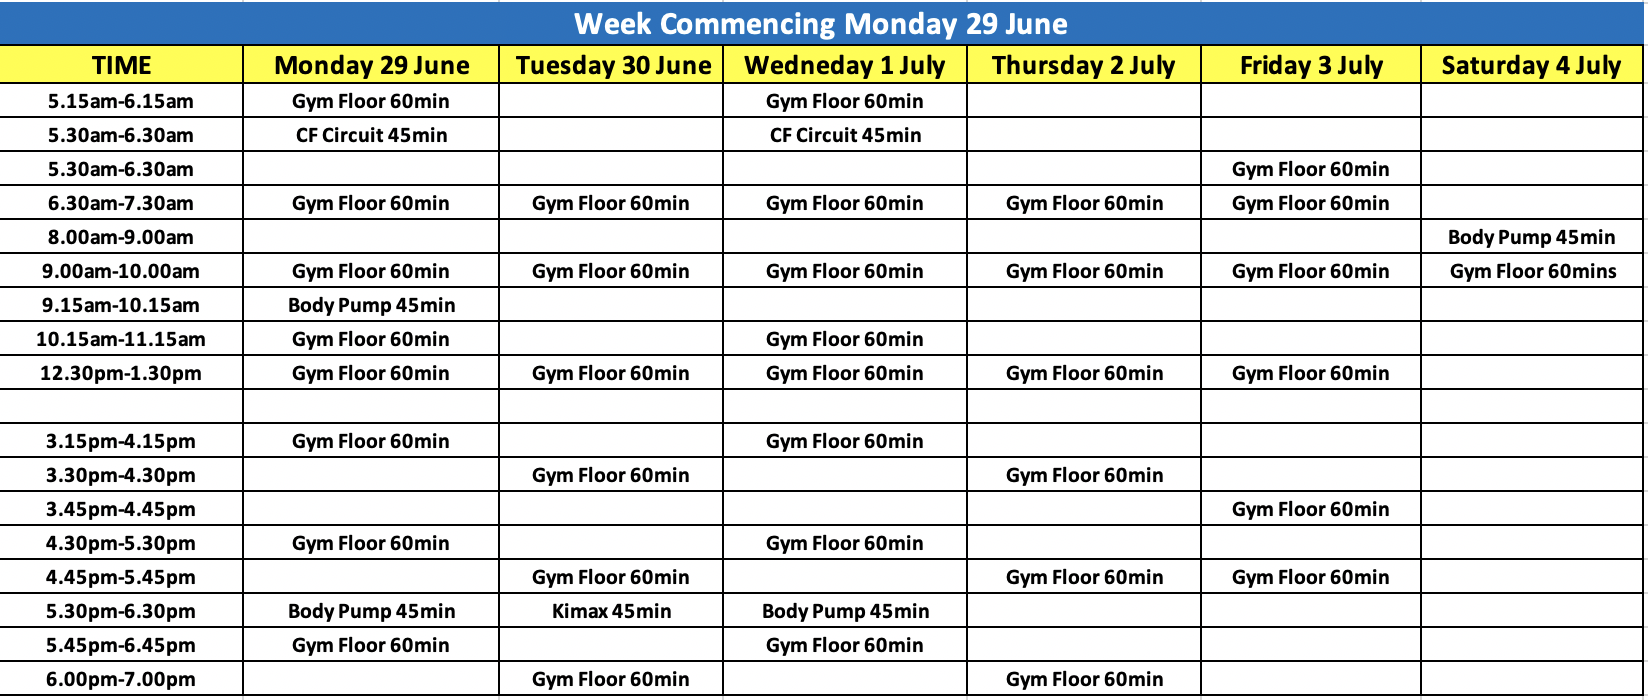 City Fitness Mackay Training Schedule Week of 29 June